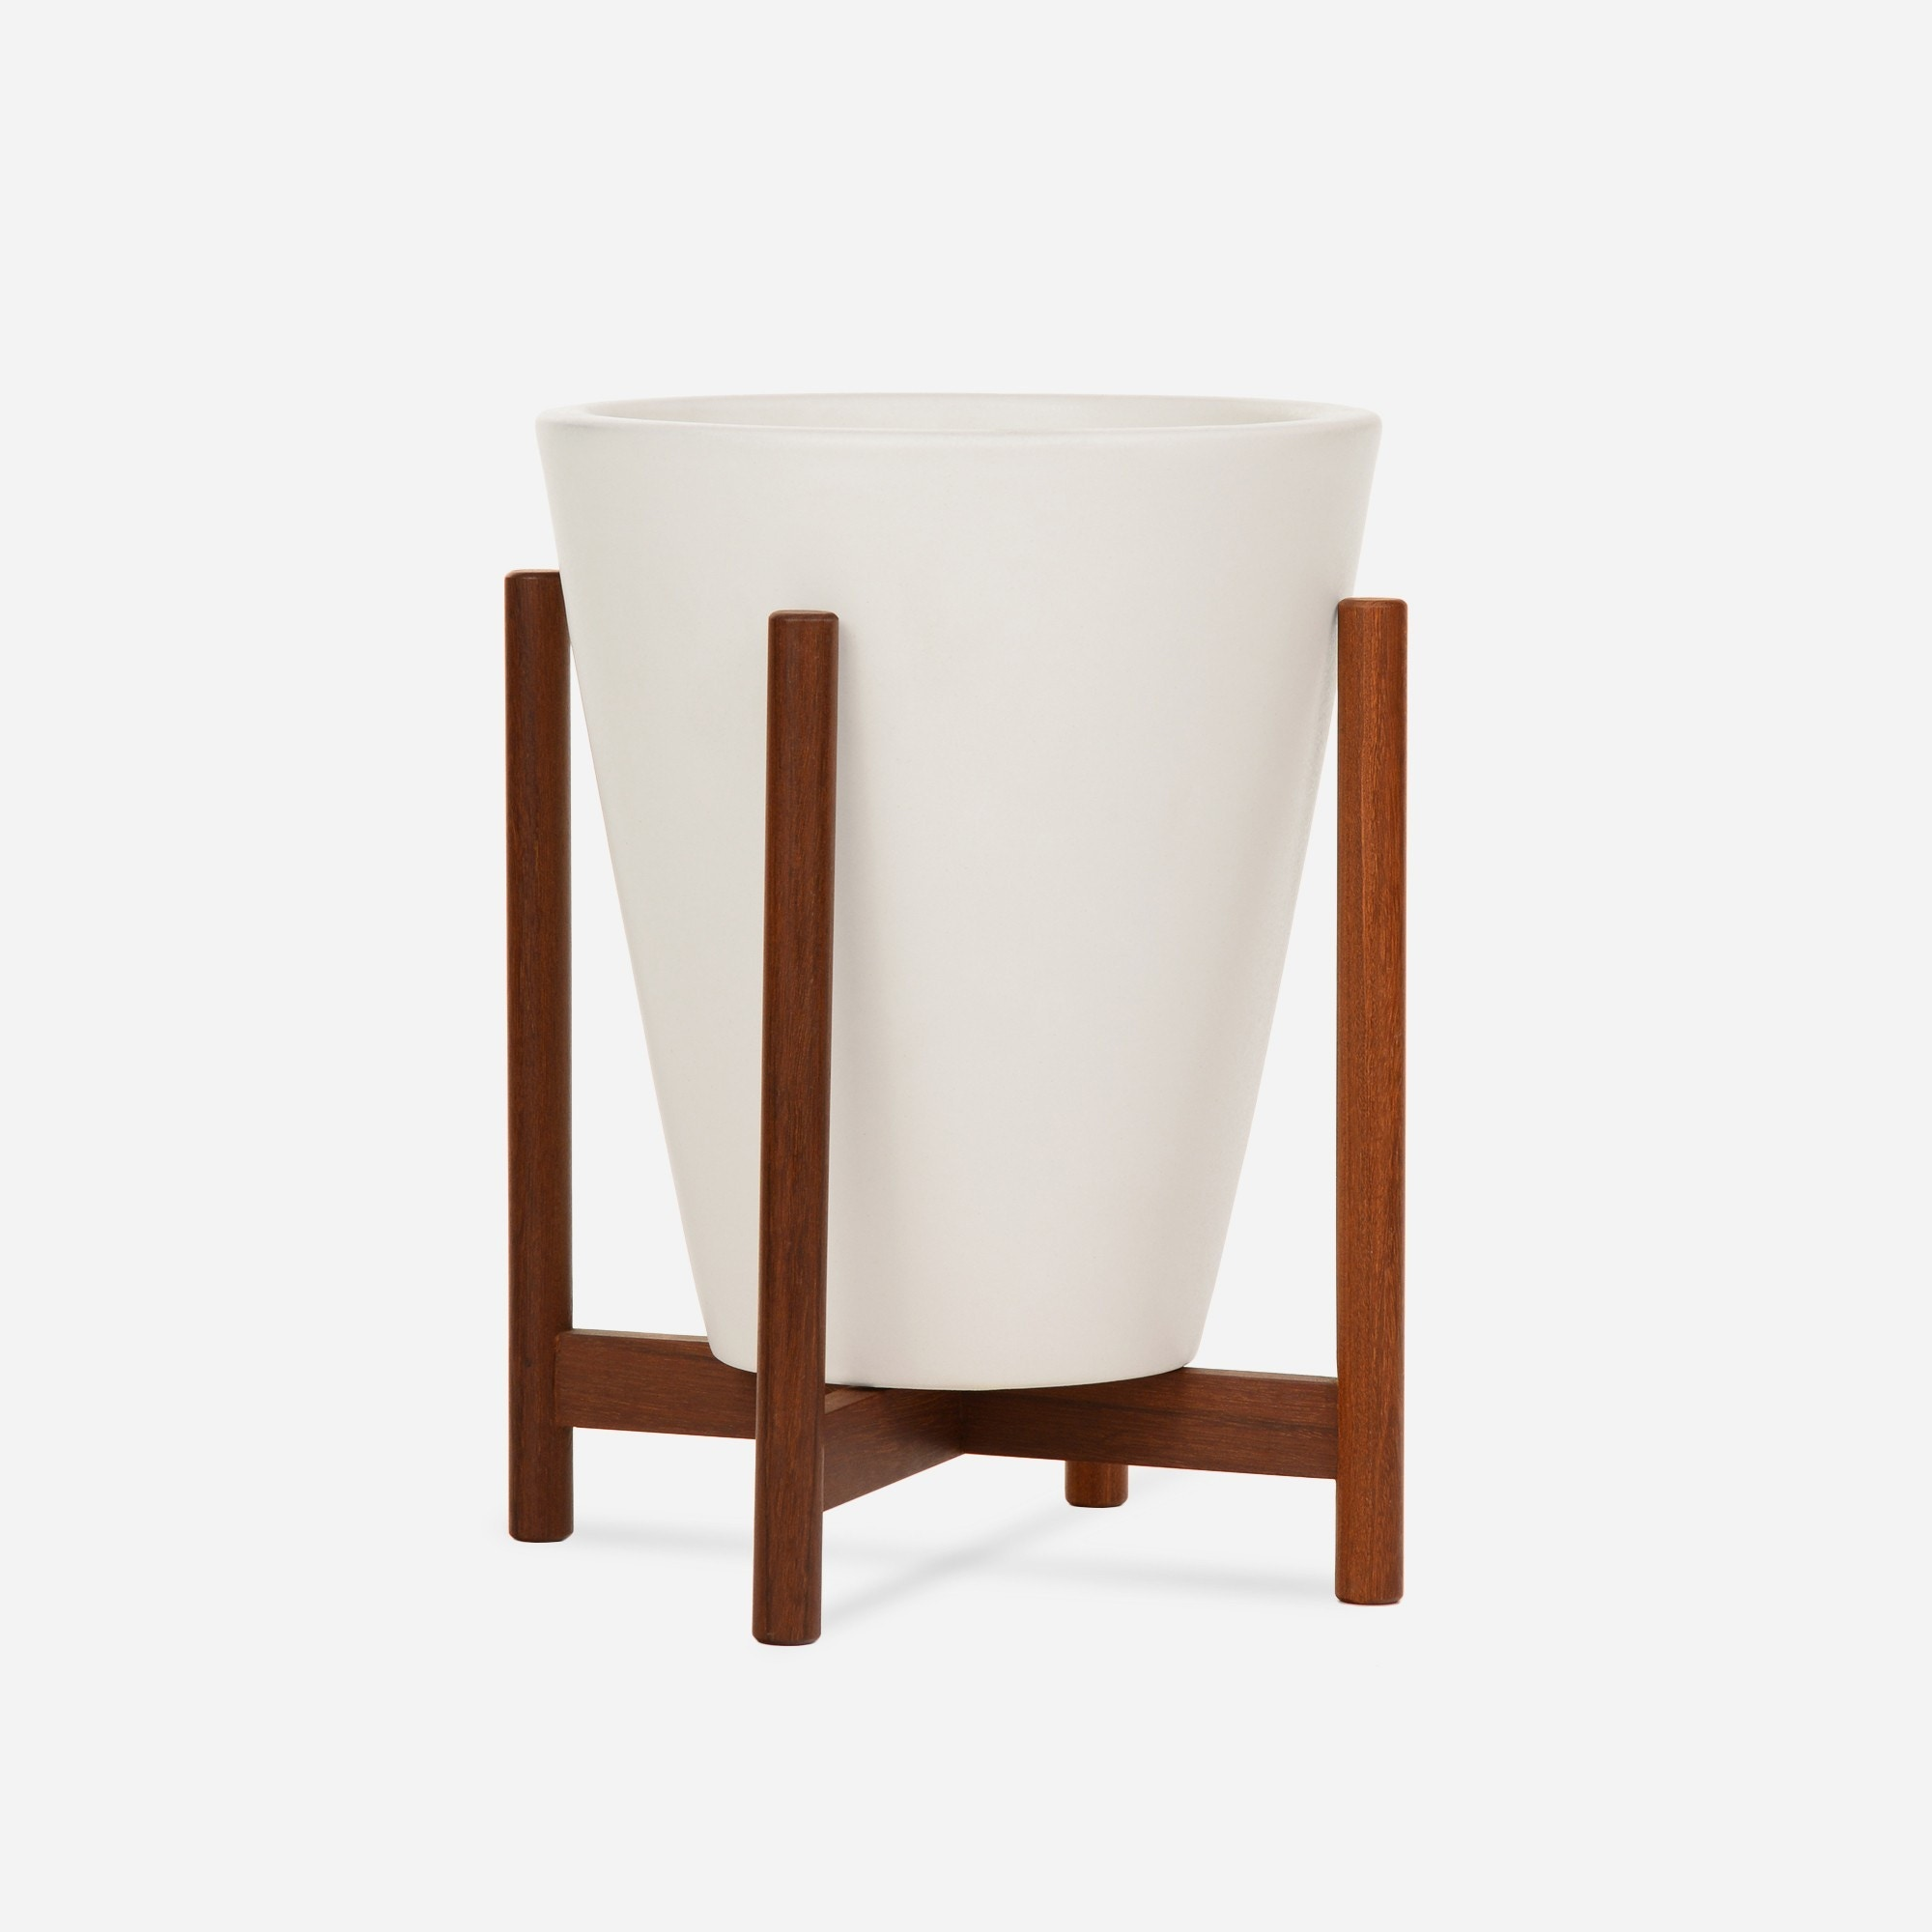 Modernica Case Study® Ceramics Table Top Funnel with Stand (Planter)